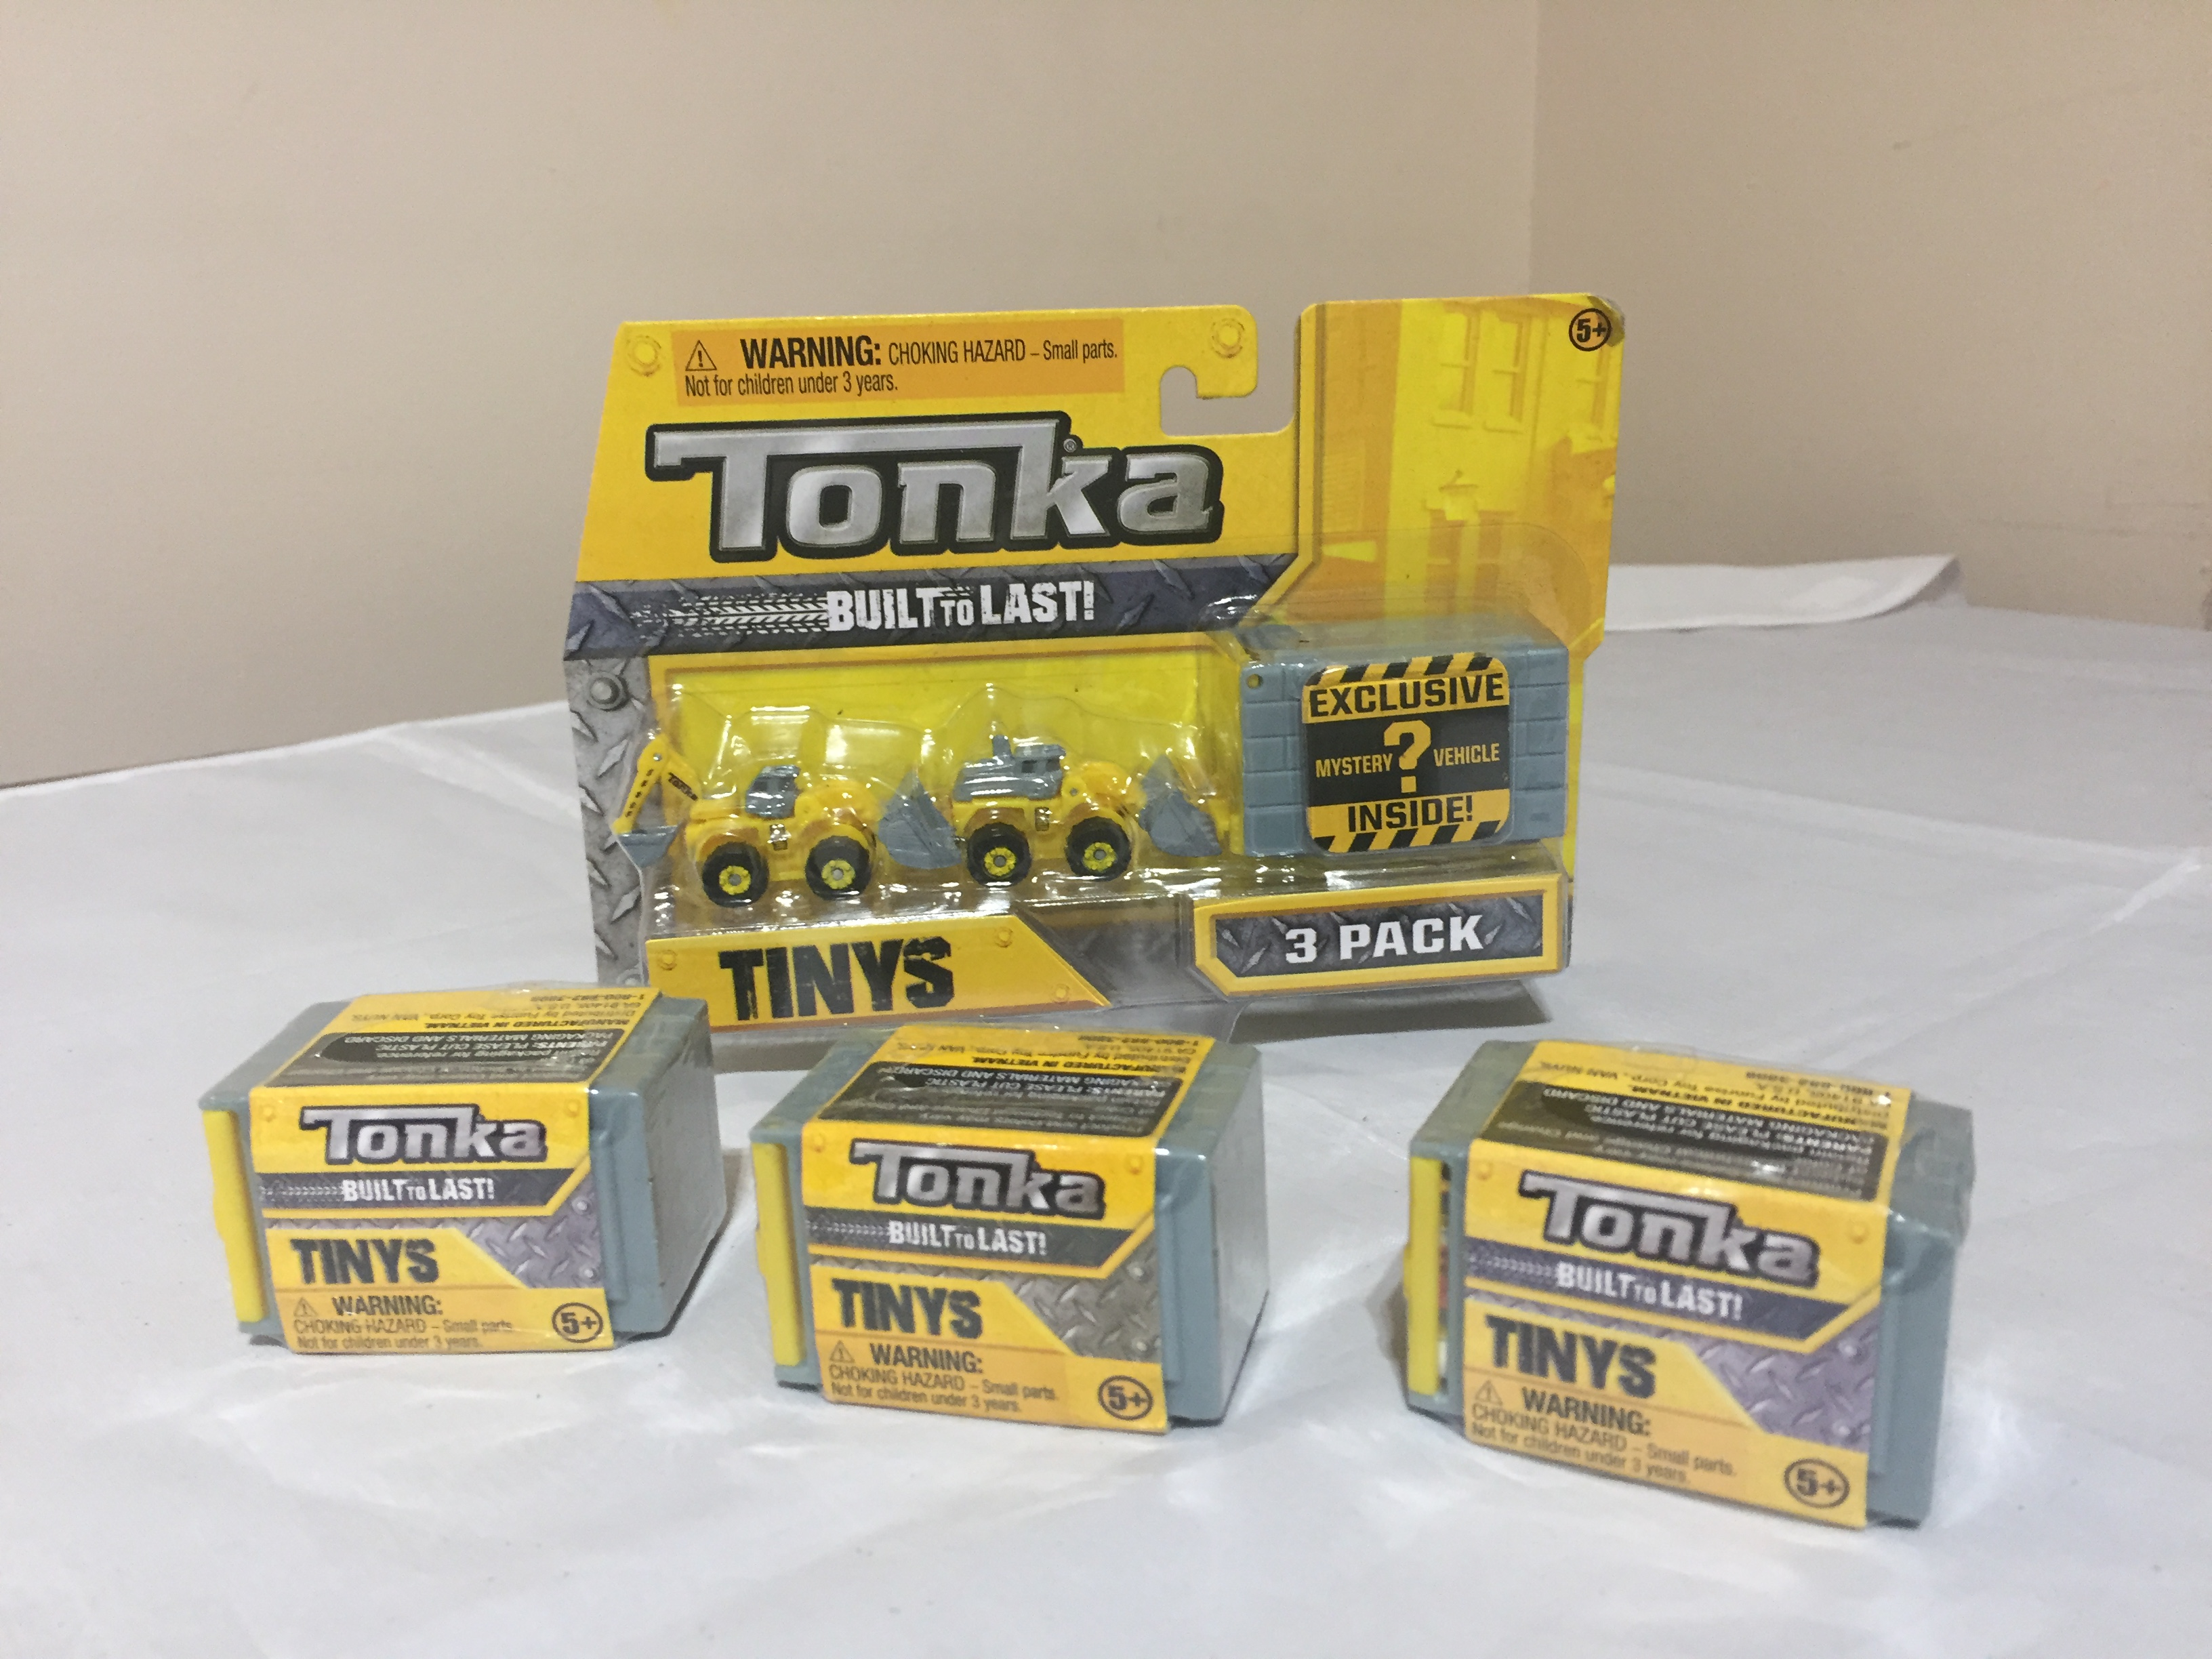 The new collectibles from Tonka Tiny Vehicles – Review